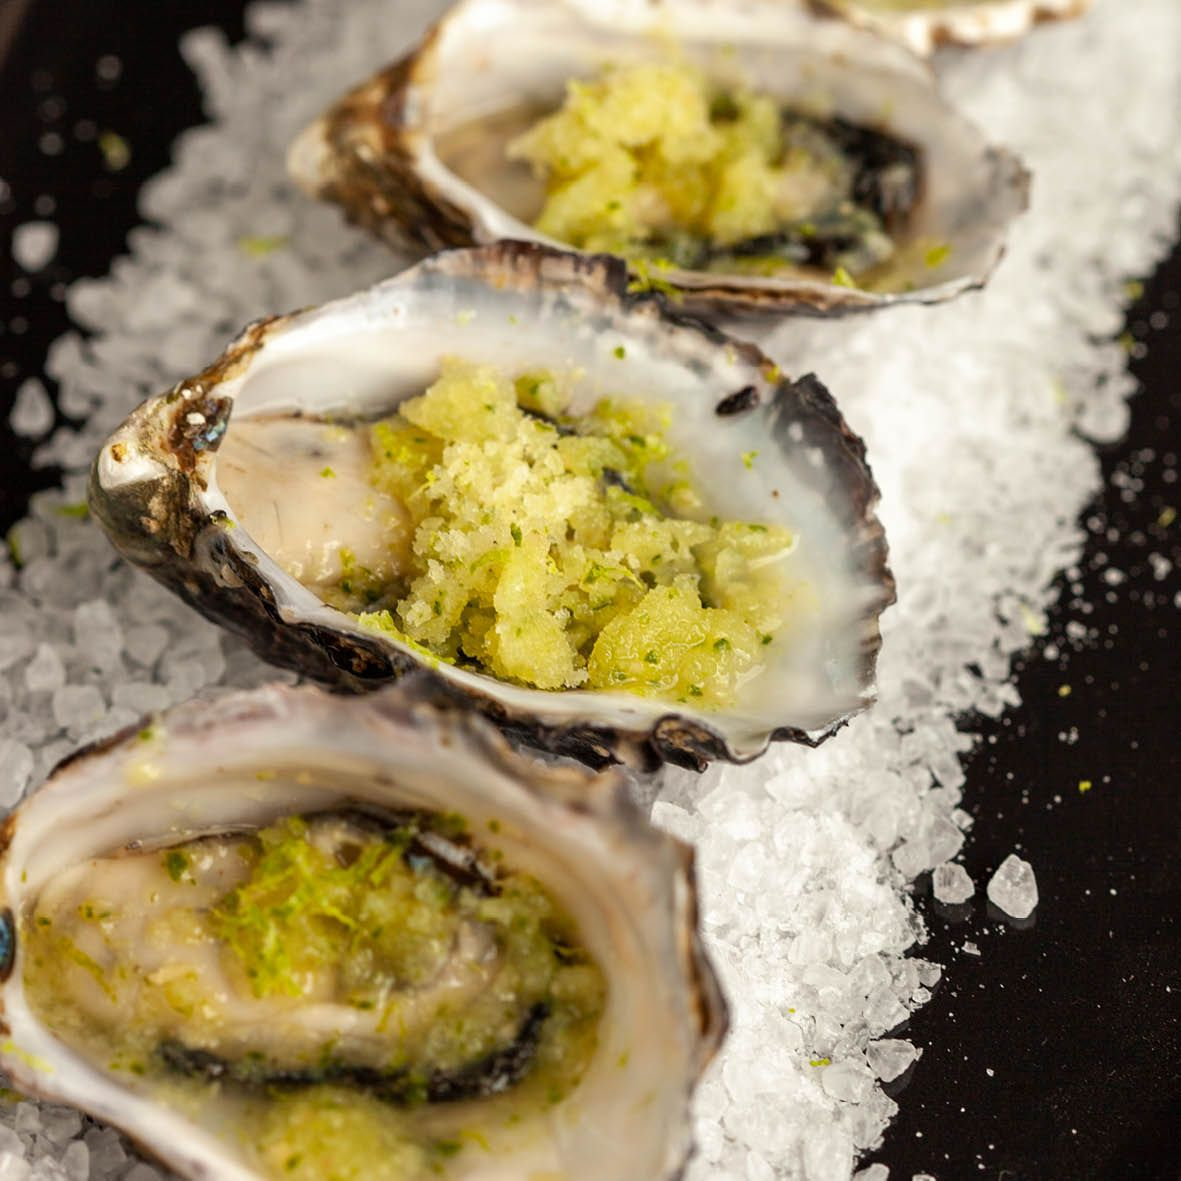 Oysters_with_Cucumber_and_Lychee_Granita.jpg